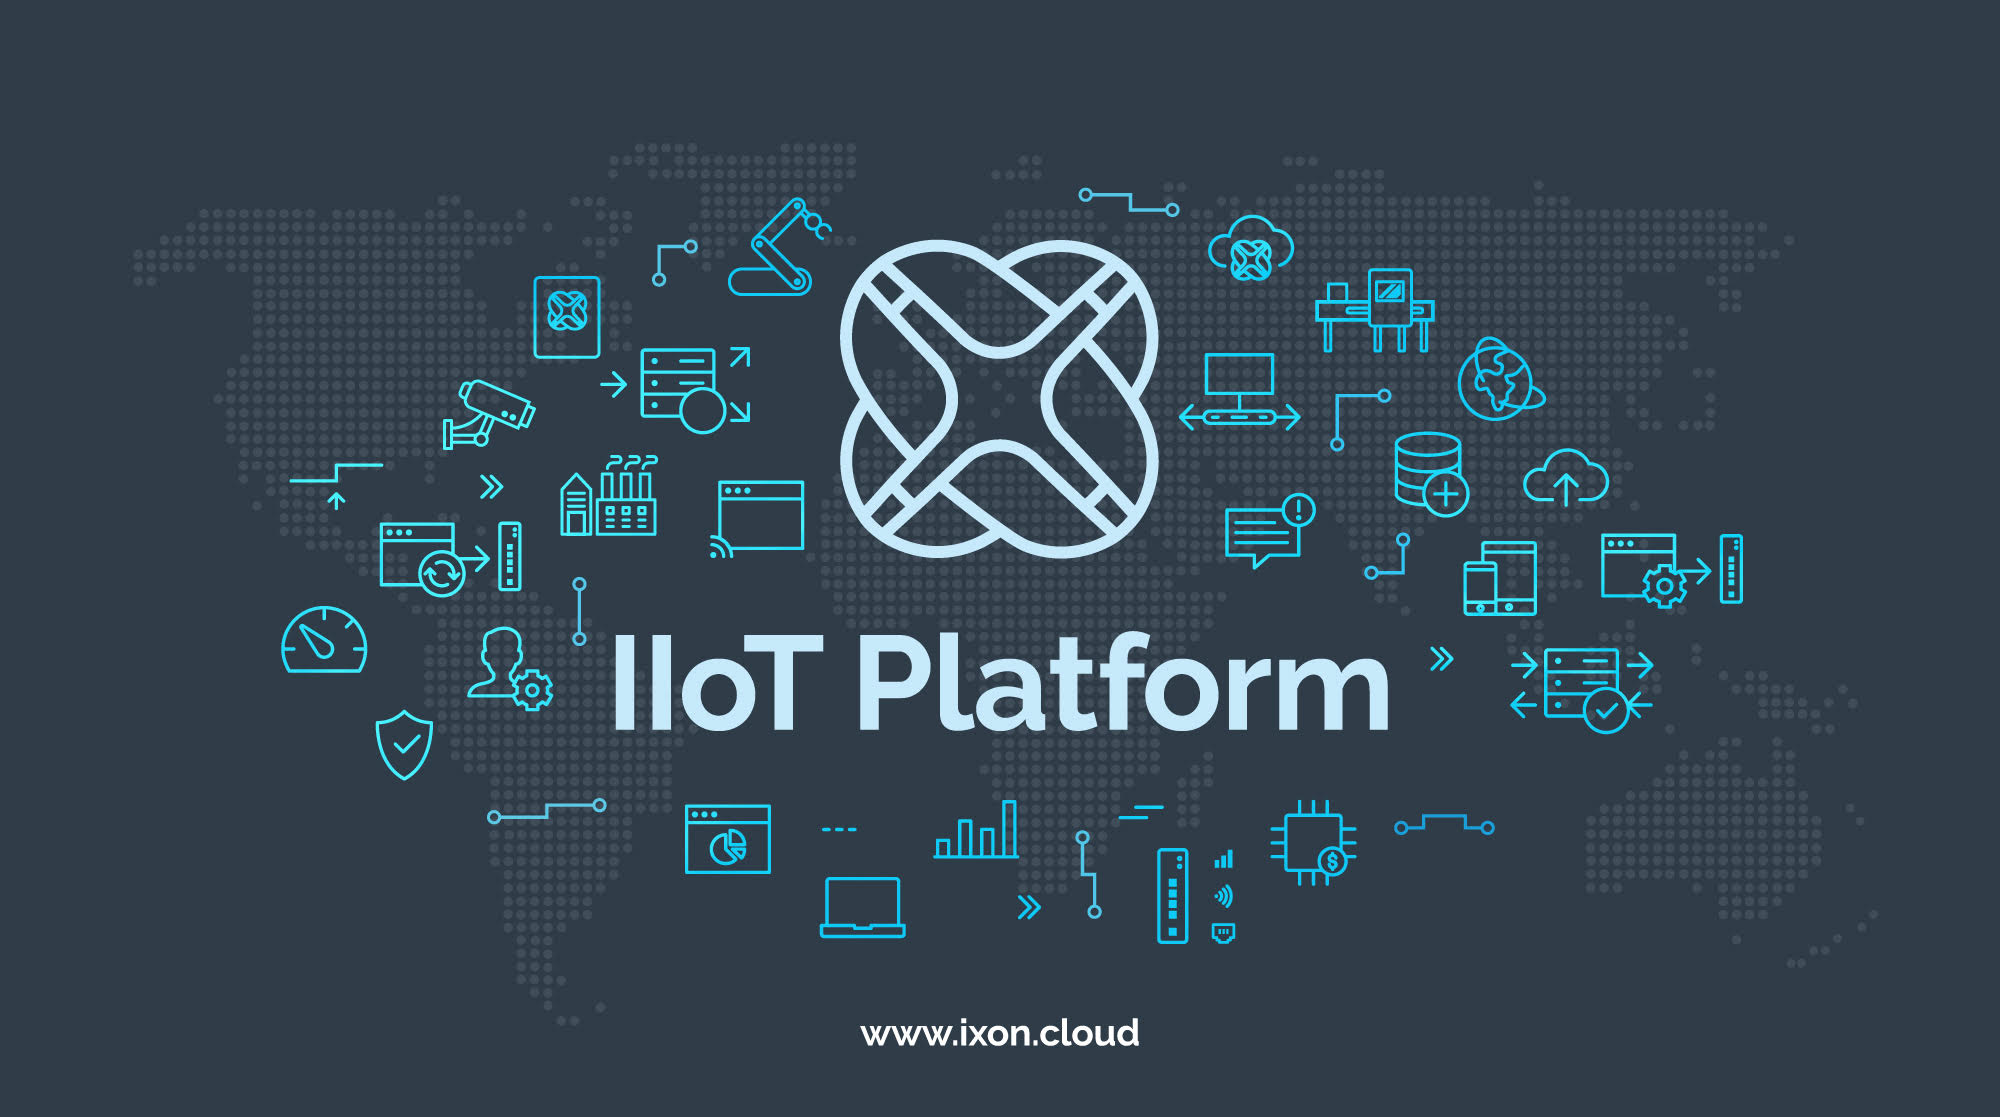 Easiest Industrial Internet Of Things platform (IIoT) for Machine Builders, Building Automation and Industrial Automation - IXON Cloud